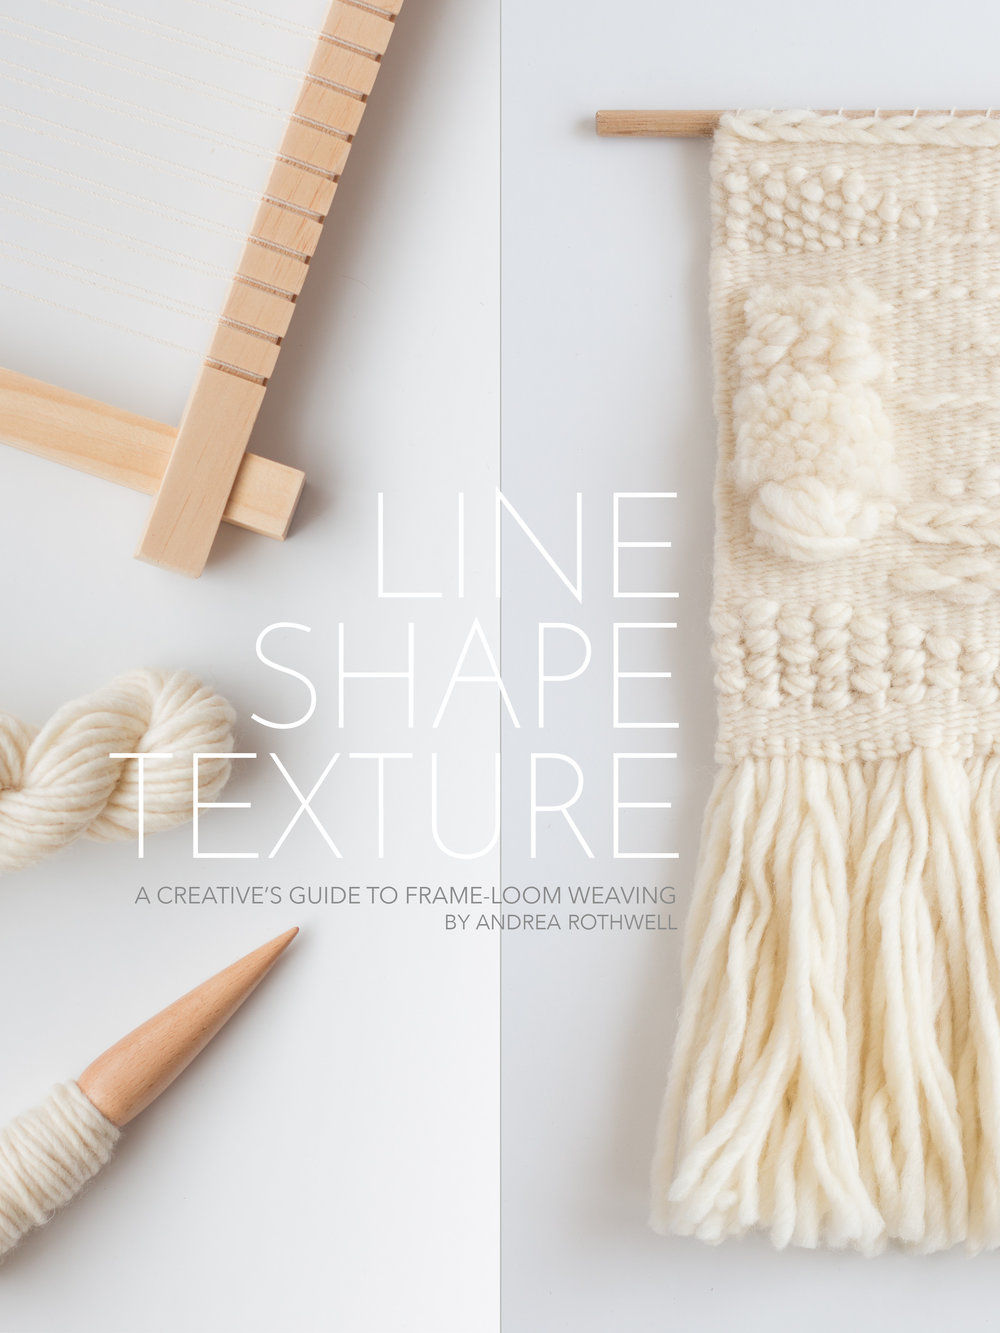 LINE SHAPE TEXTURE A Creative's Guide to Frame-Loom Weaving.jpg